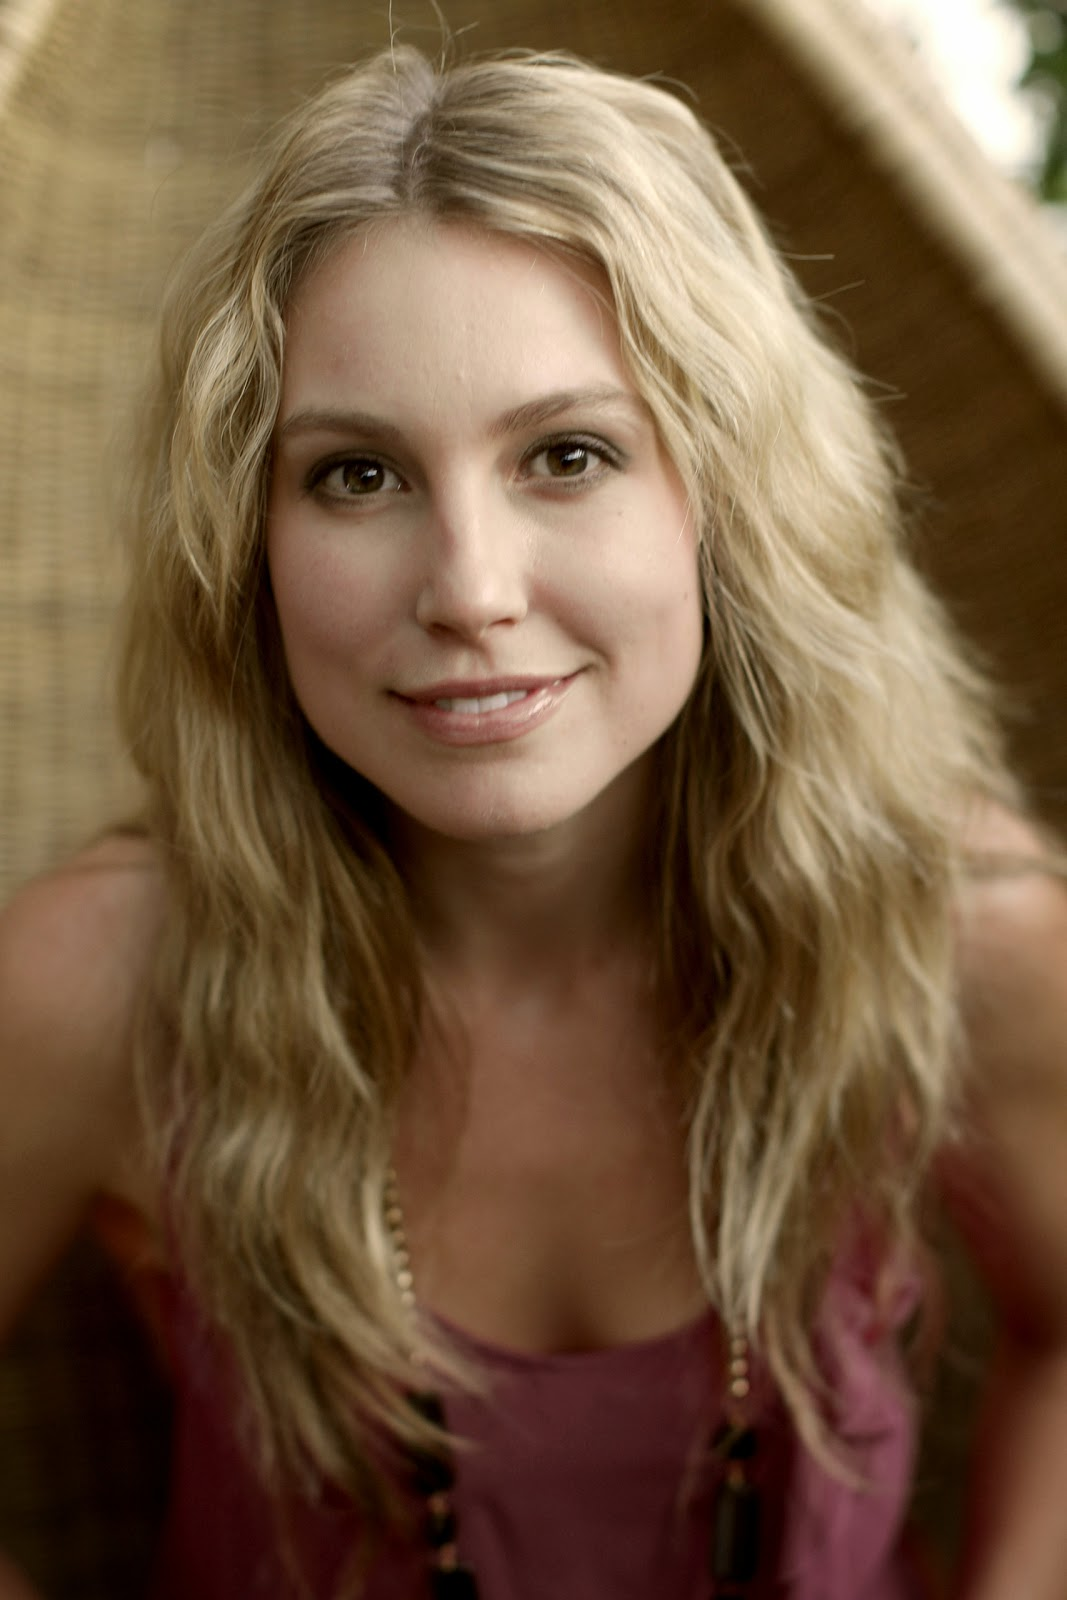 Twitter Account: Sarah Carter